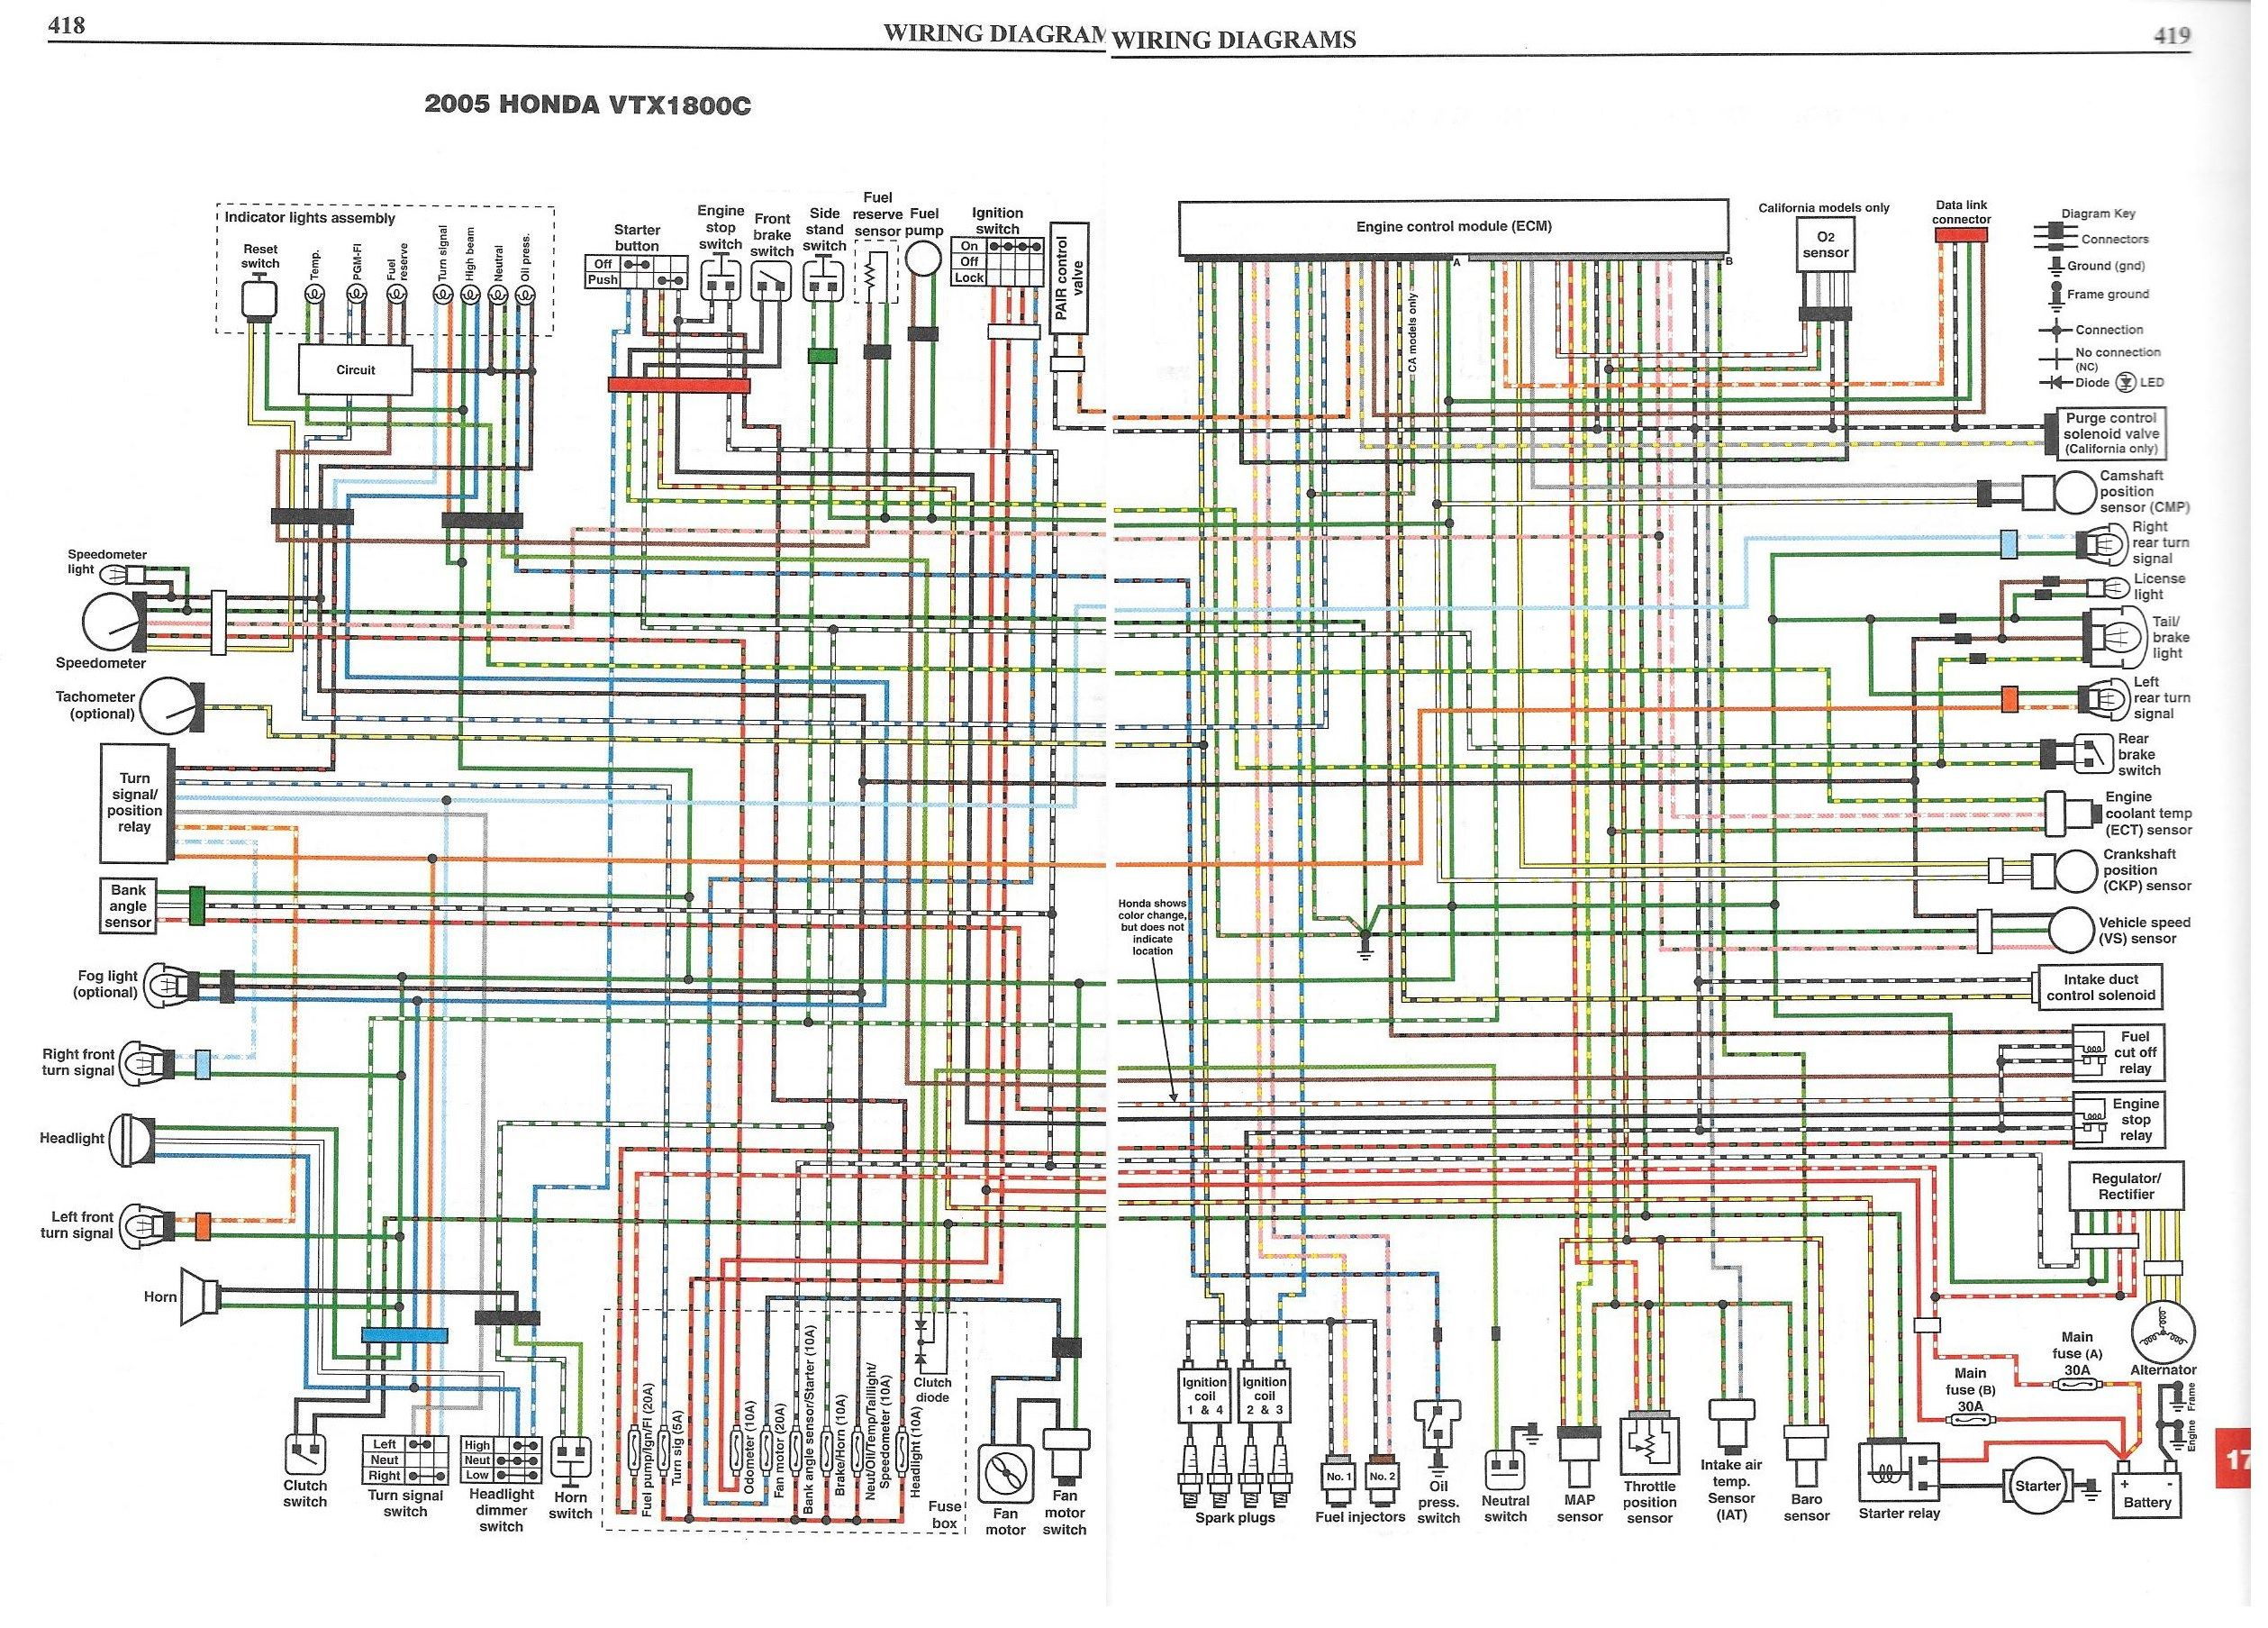 wiring diagram for honda vtx 1300 wiring diagram 2003 honda vtx 1800